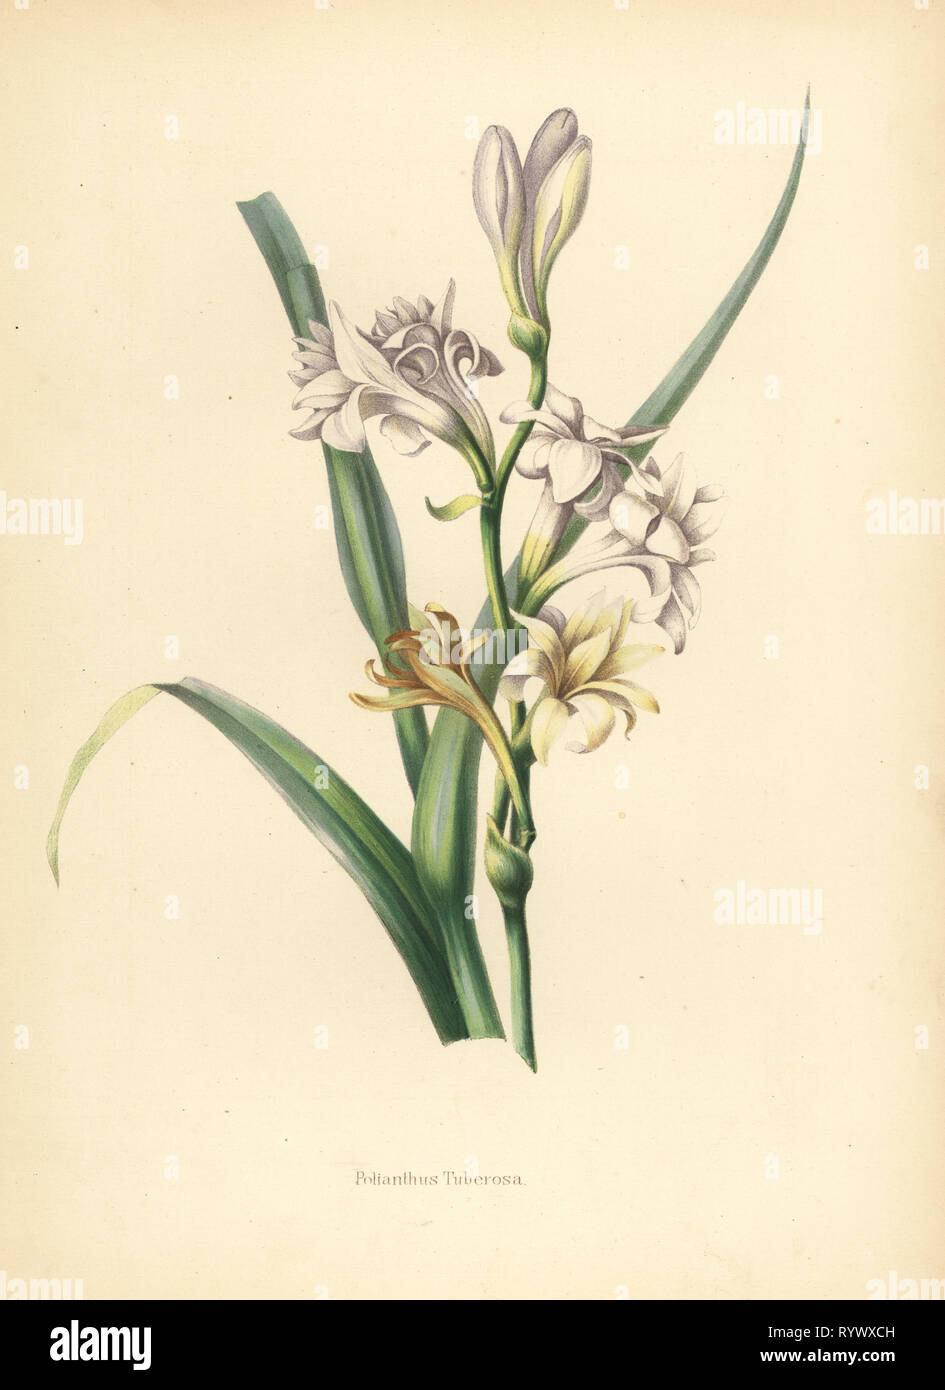 Tuberose, Polianthes tuberosa (Polianthus tuberosa.). Chromolithograph after a botanical illustration by Emily Eden from her Flowers from an Indian Garden: Second Series: Hope, Breidenbach & Co, Dusseldorf, 1860s. Eden was an English female aristocratic writer, novelist and traveler who accompanied her brother George in India from 1836 to 1842. - Stock Image